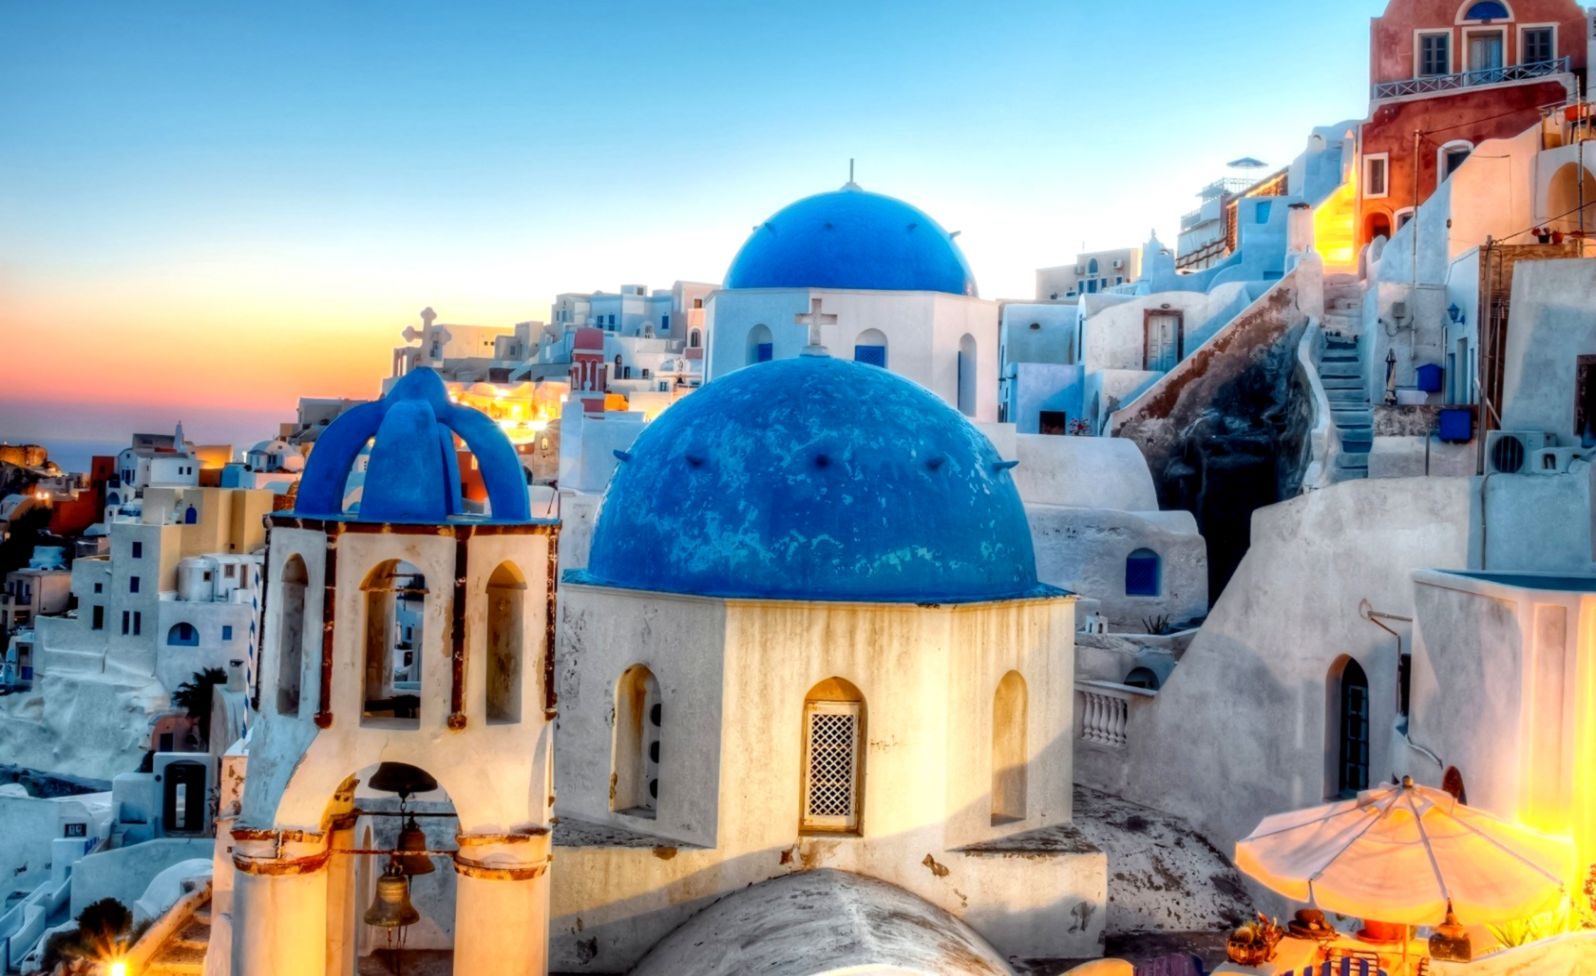 Greece Oia Santorini City Hd Wallpaper Wallpapers Lock Screen 1596x976